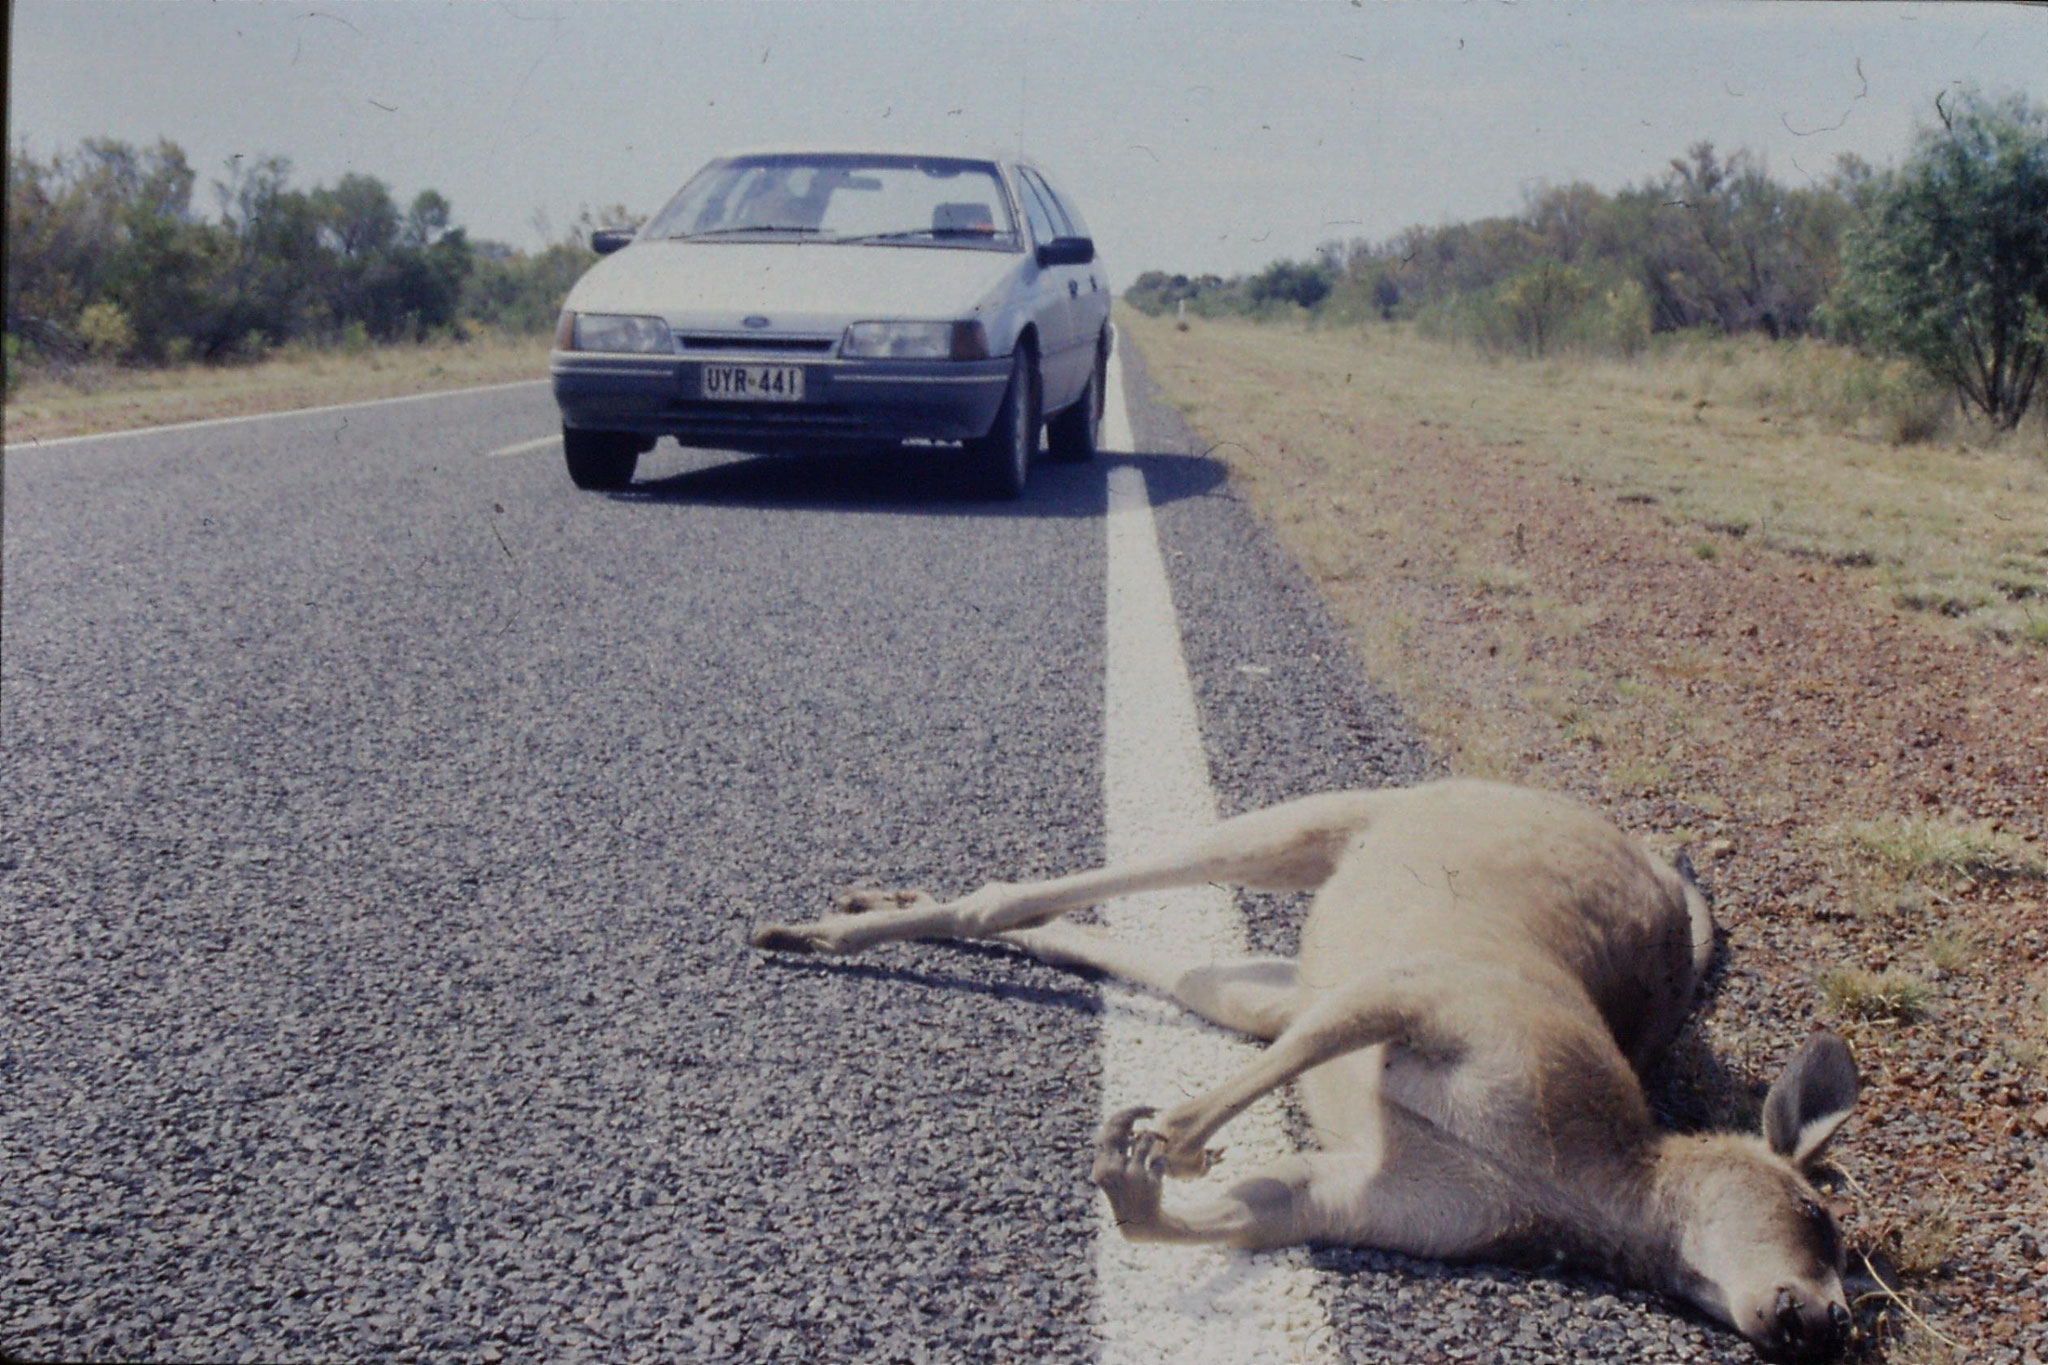 2/11/1990: 36: dead kangaroo on road